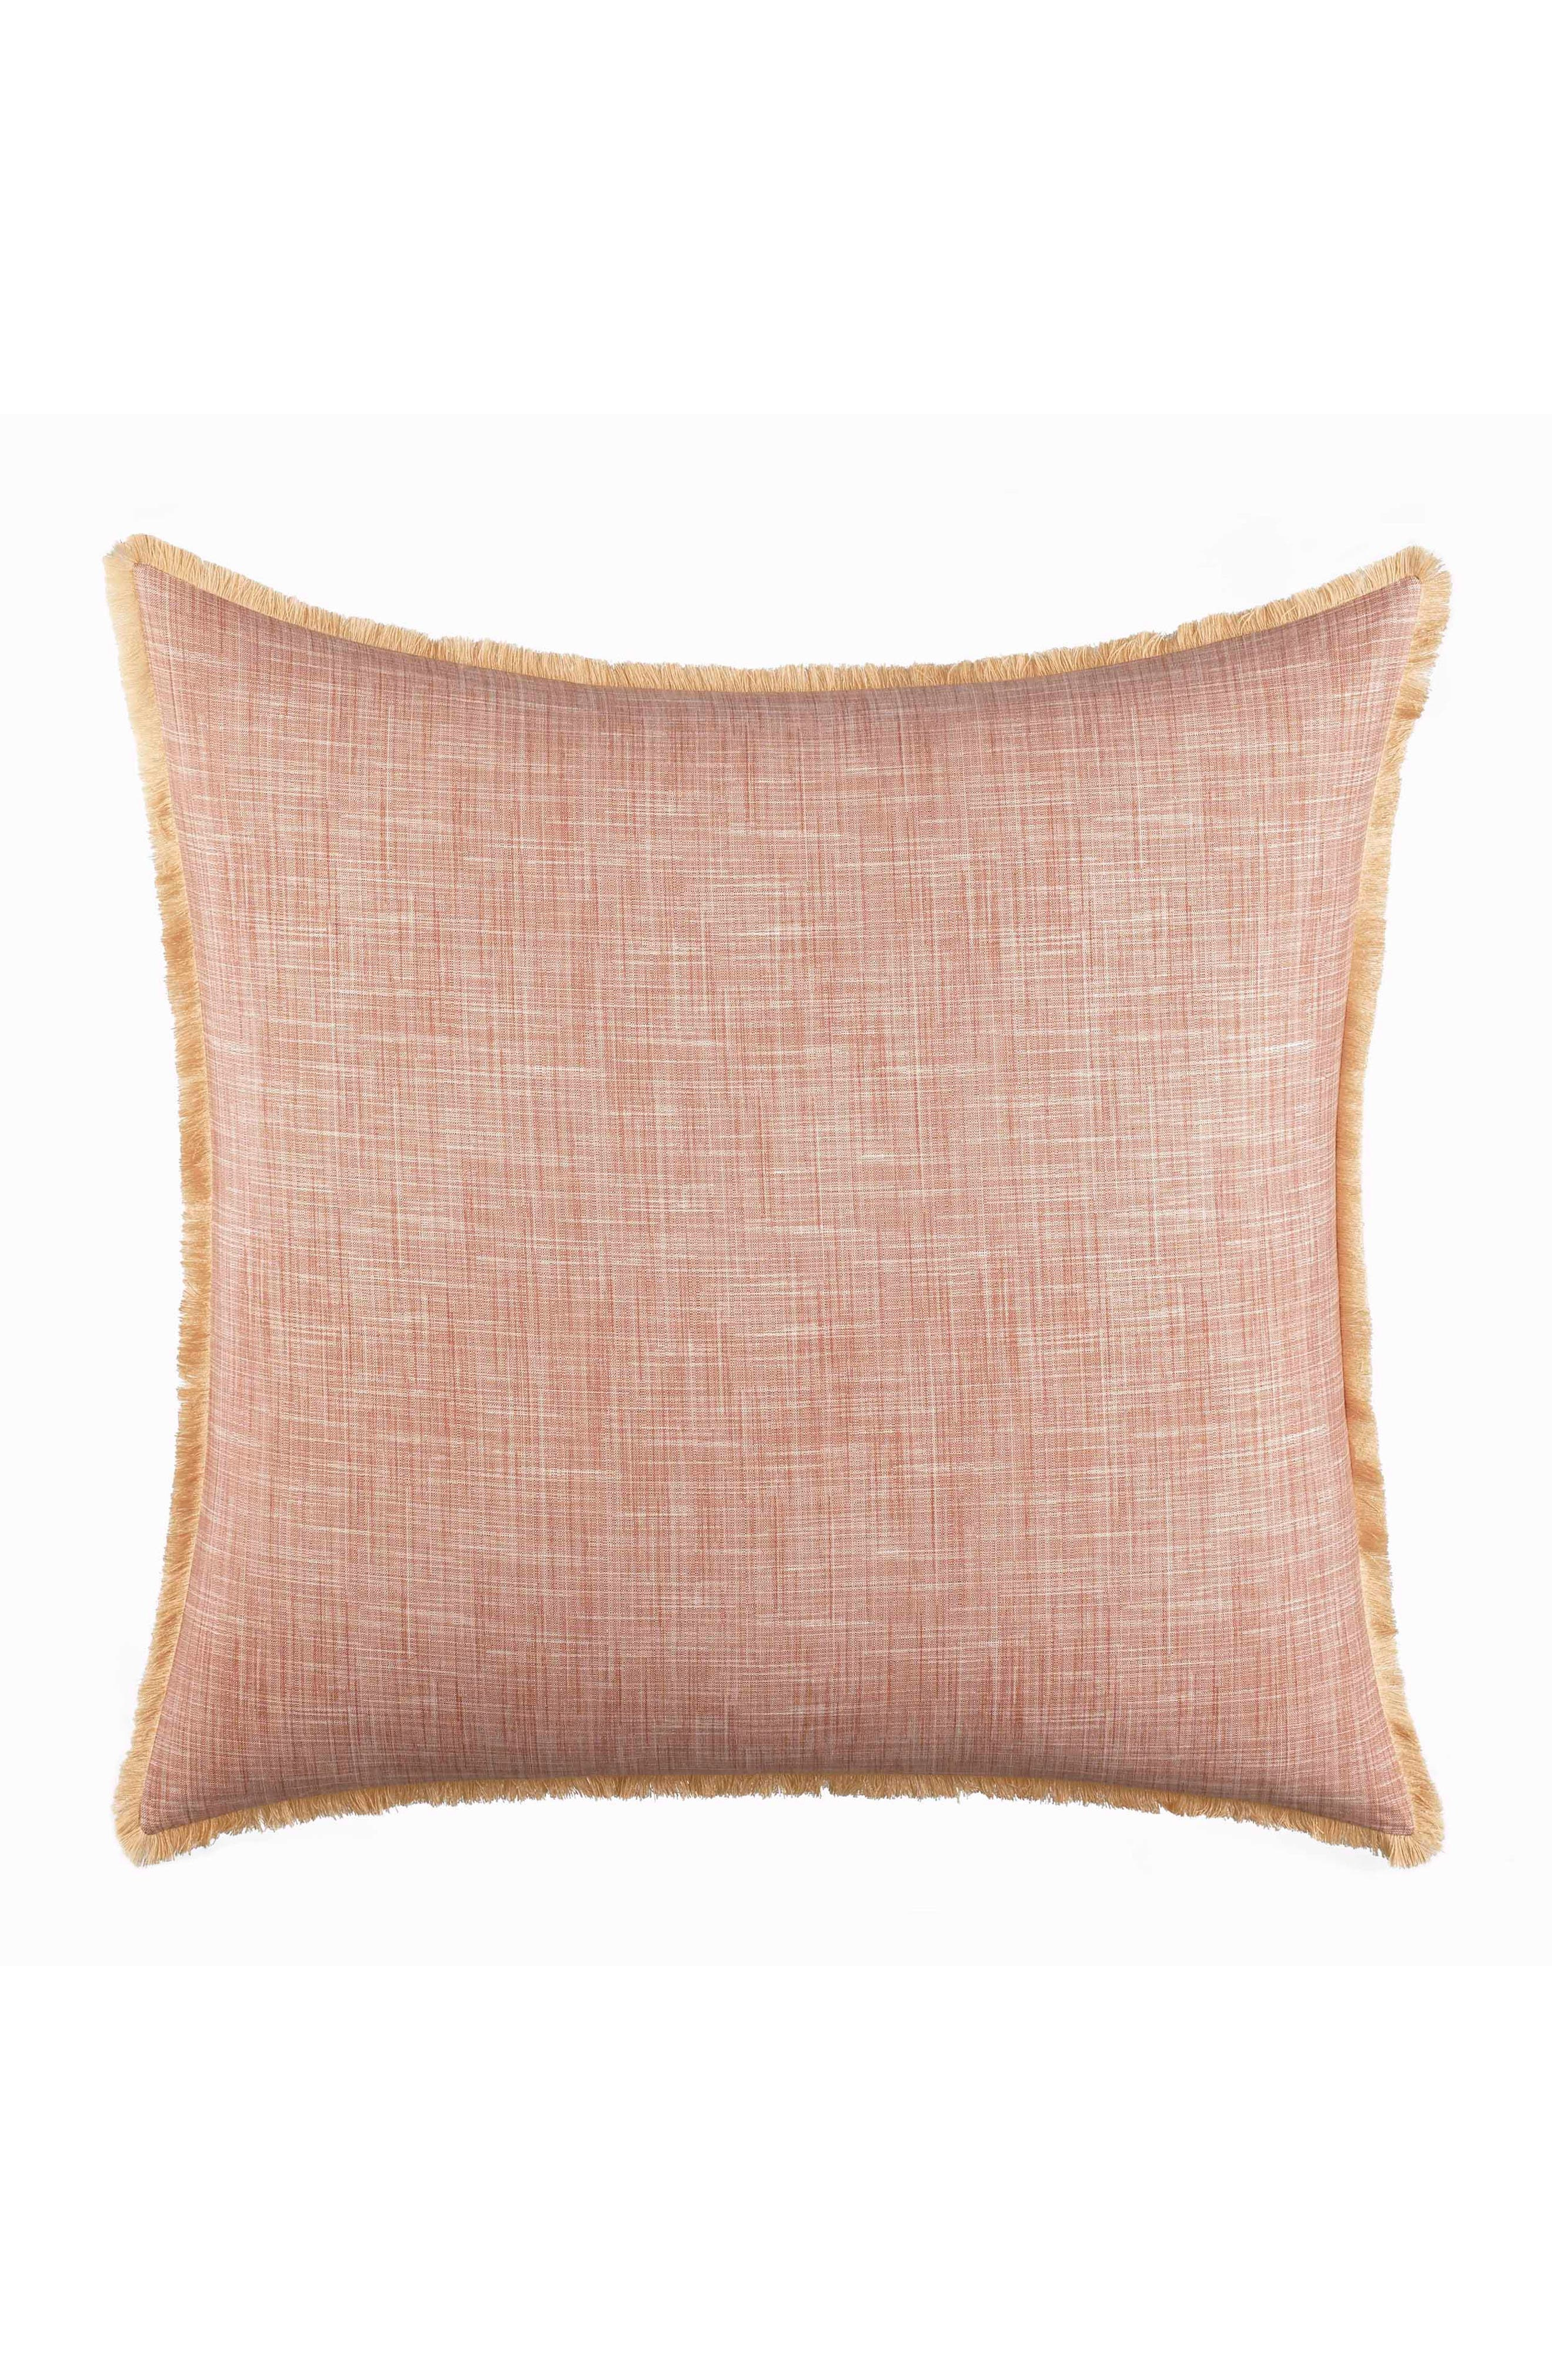 TOMMY BAHAMA,                             Sunset Stripe Euro Pillow Sham,                             Main thumbnail 1, color,                             BURNT CORAL